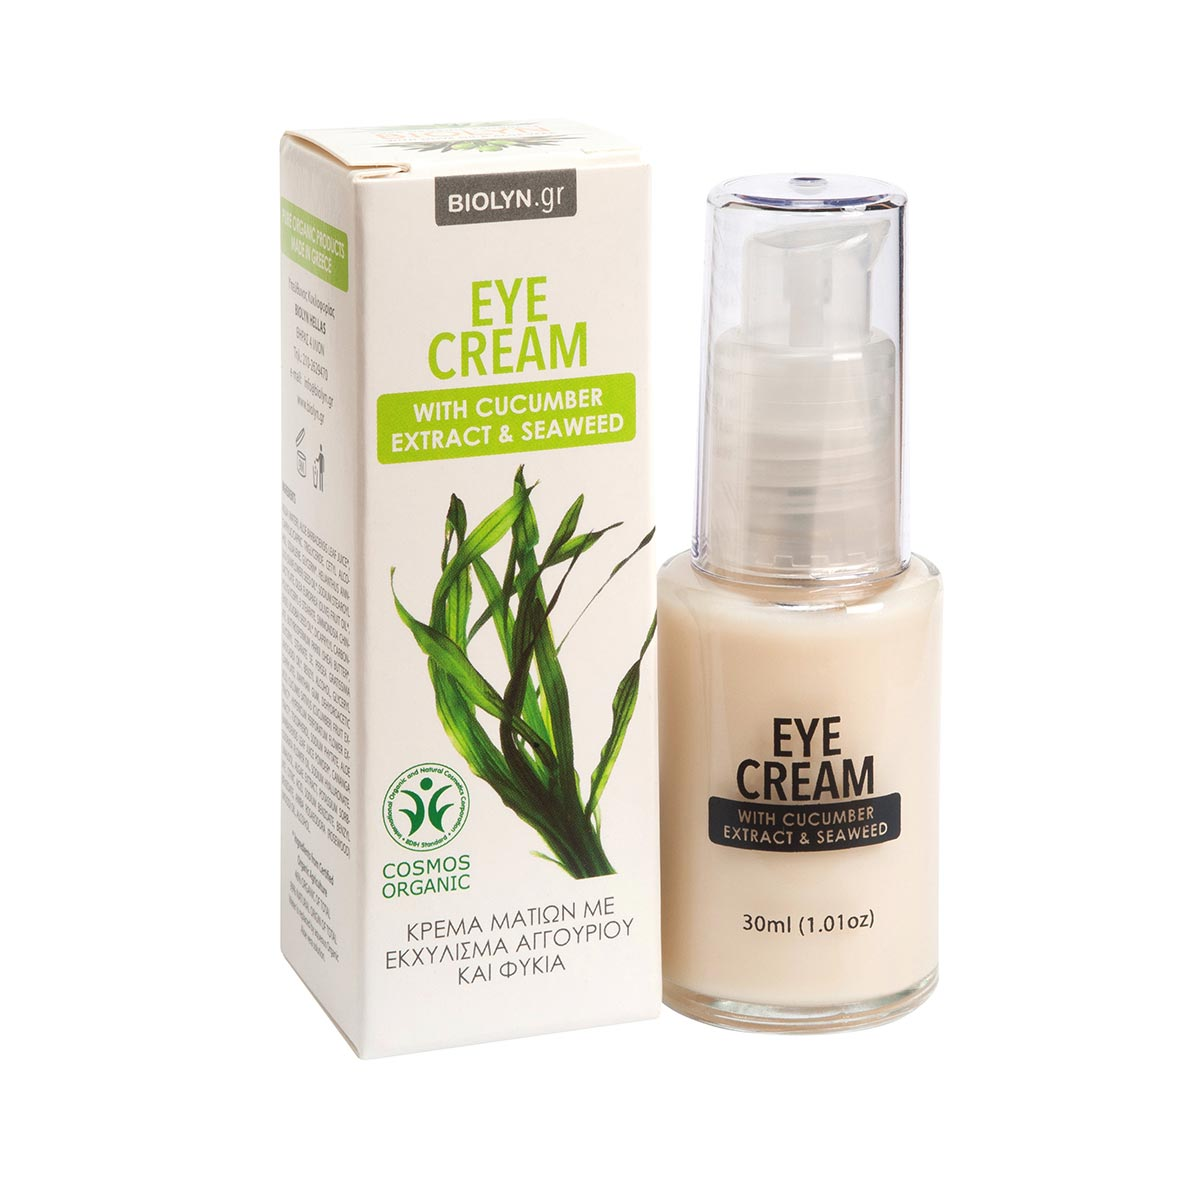 EYE CREAM with Cucumber Extract & Seaweed